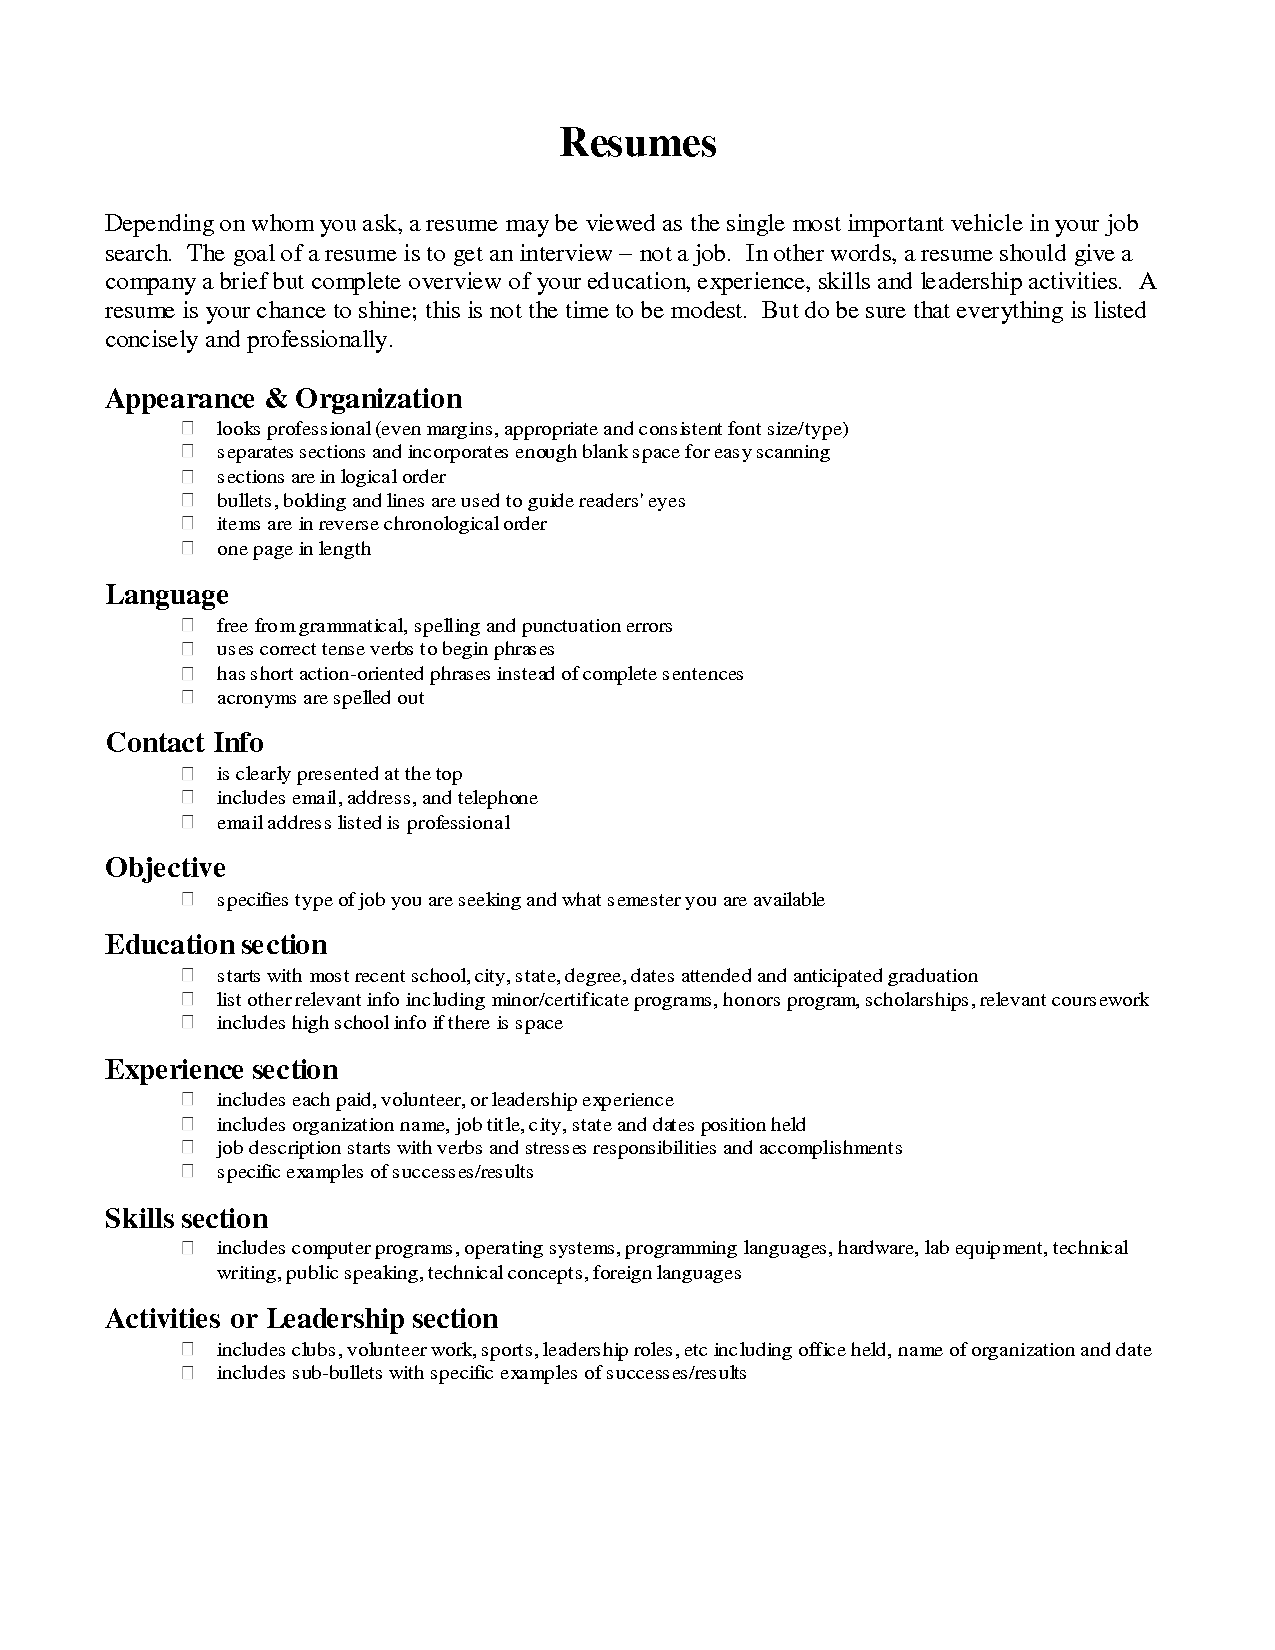 Example Of A Professional Resume Resume Body Format Cover Letters Sdsu Best Ideas About Free Sample